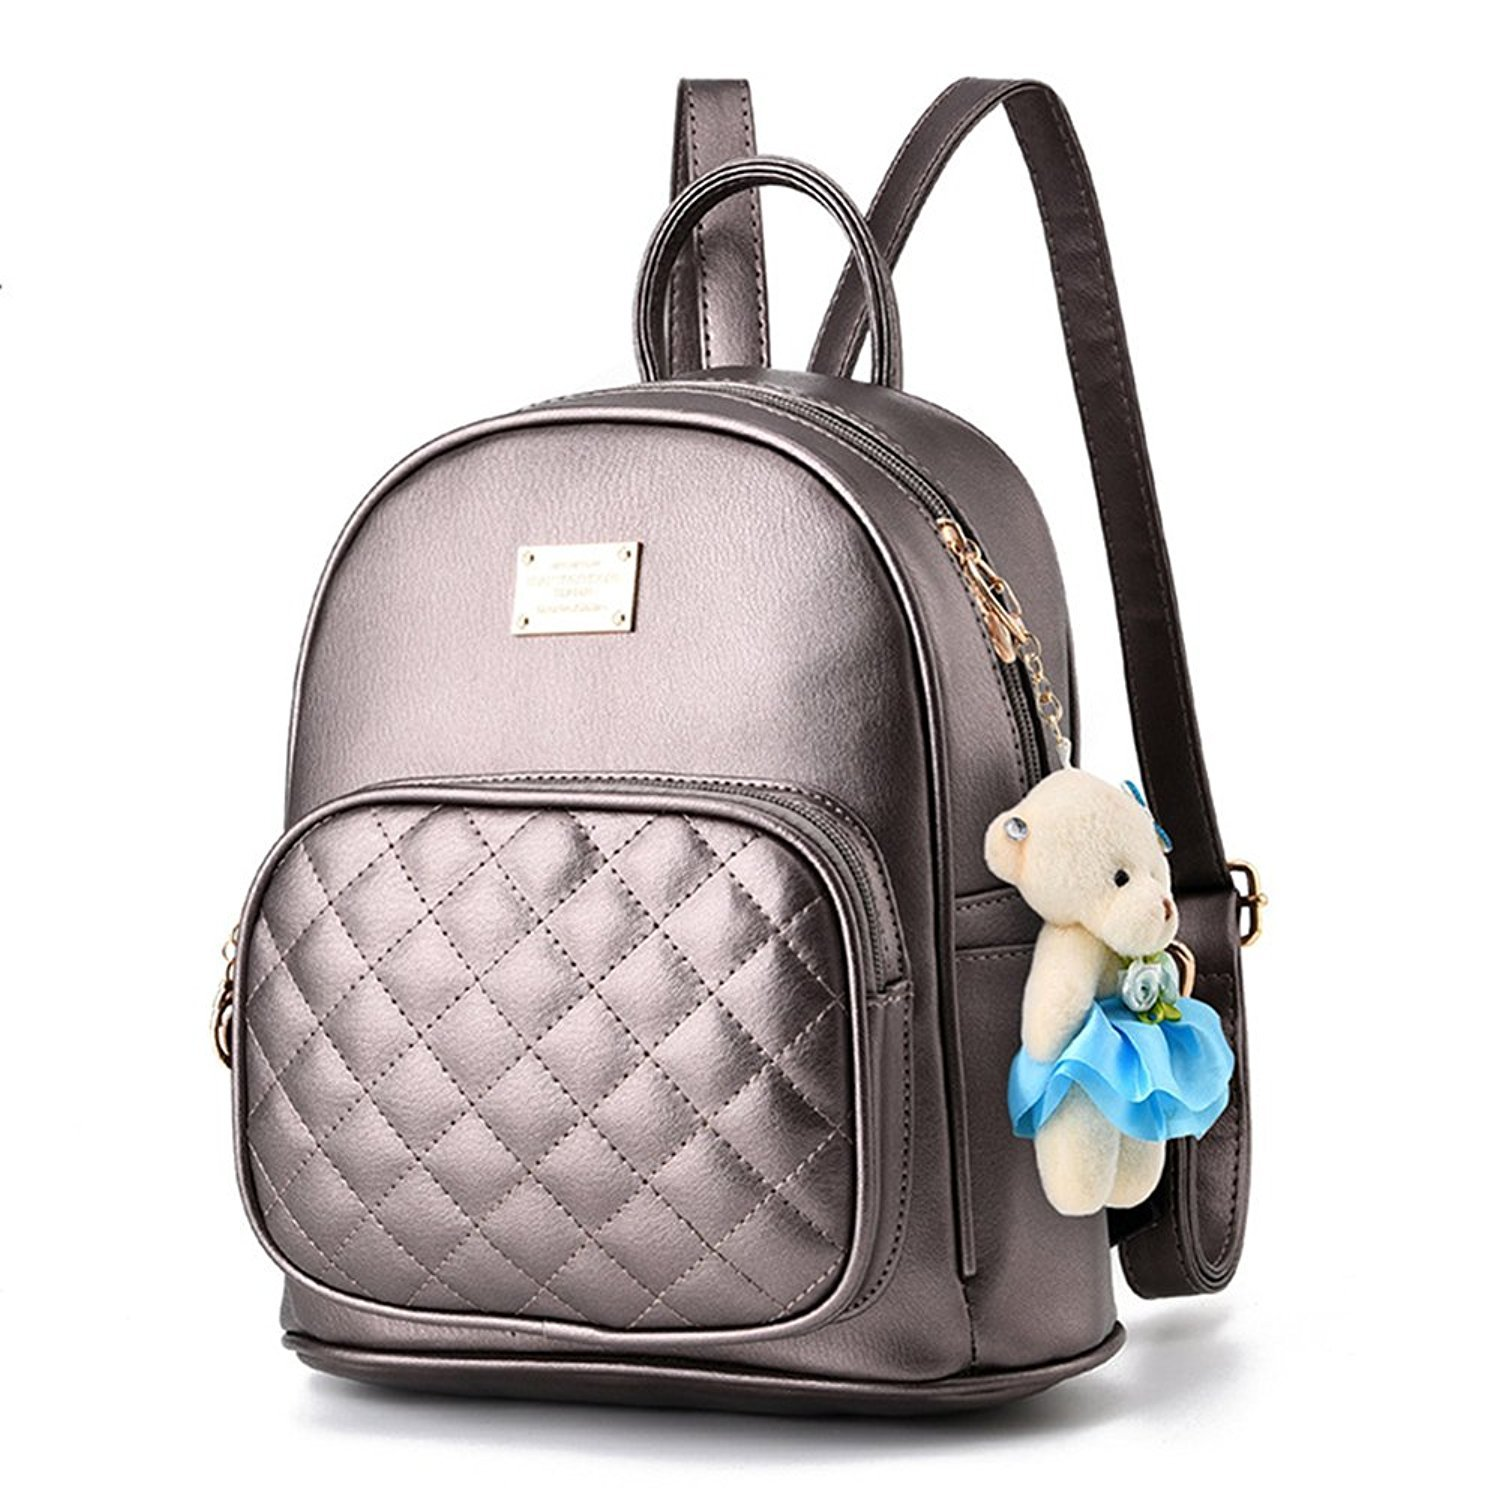 Women Cute Leather Laides Shopping Casual Backpack Travle Backpack for Girls LJYXYYB412540-black?